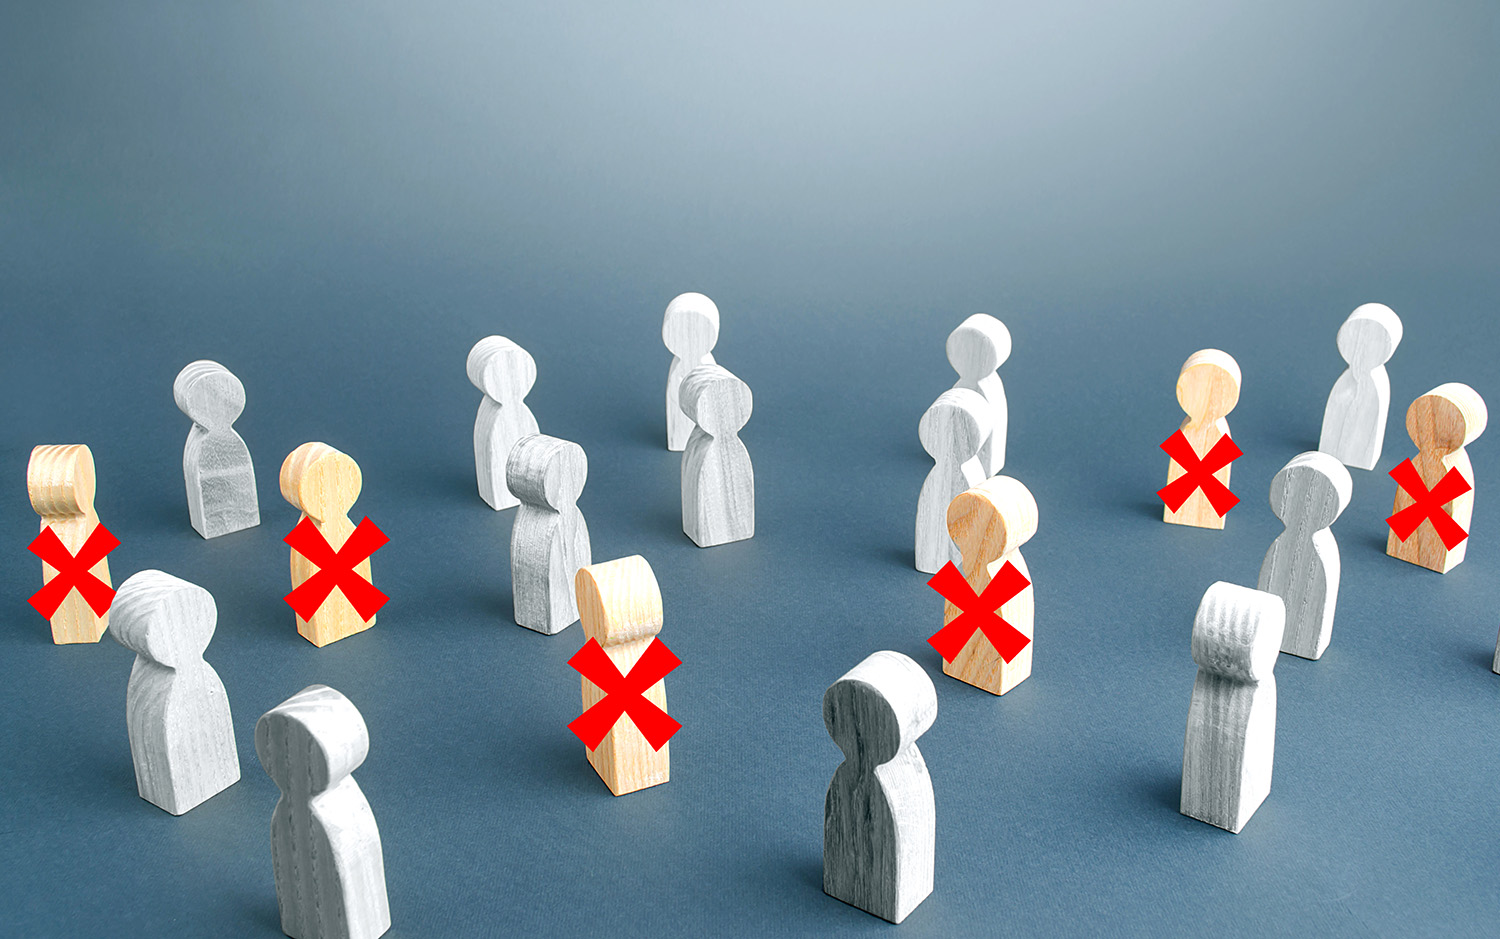 Group of figures, some with Xs over them representing a fractured workforce